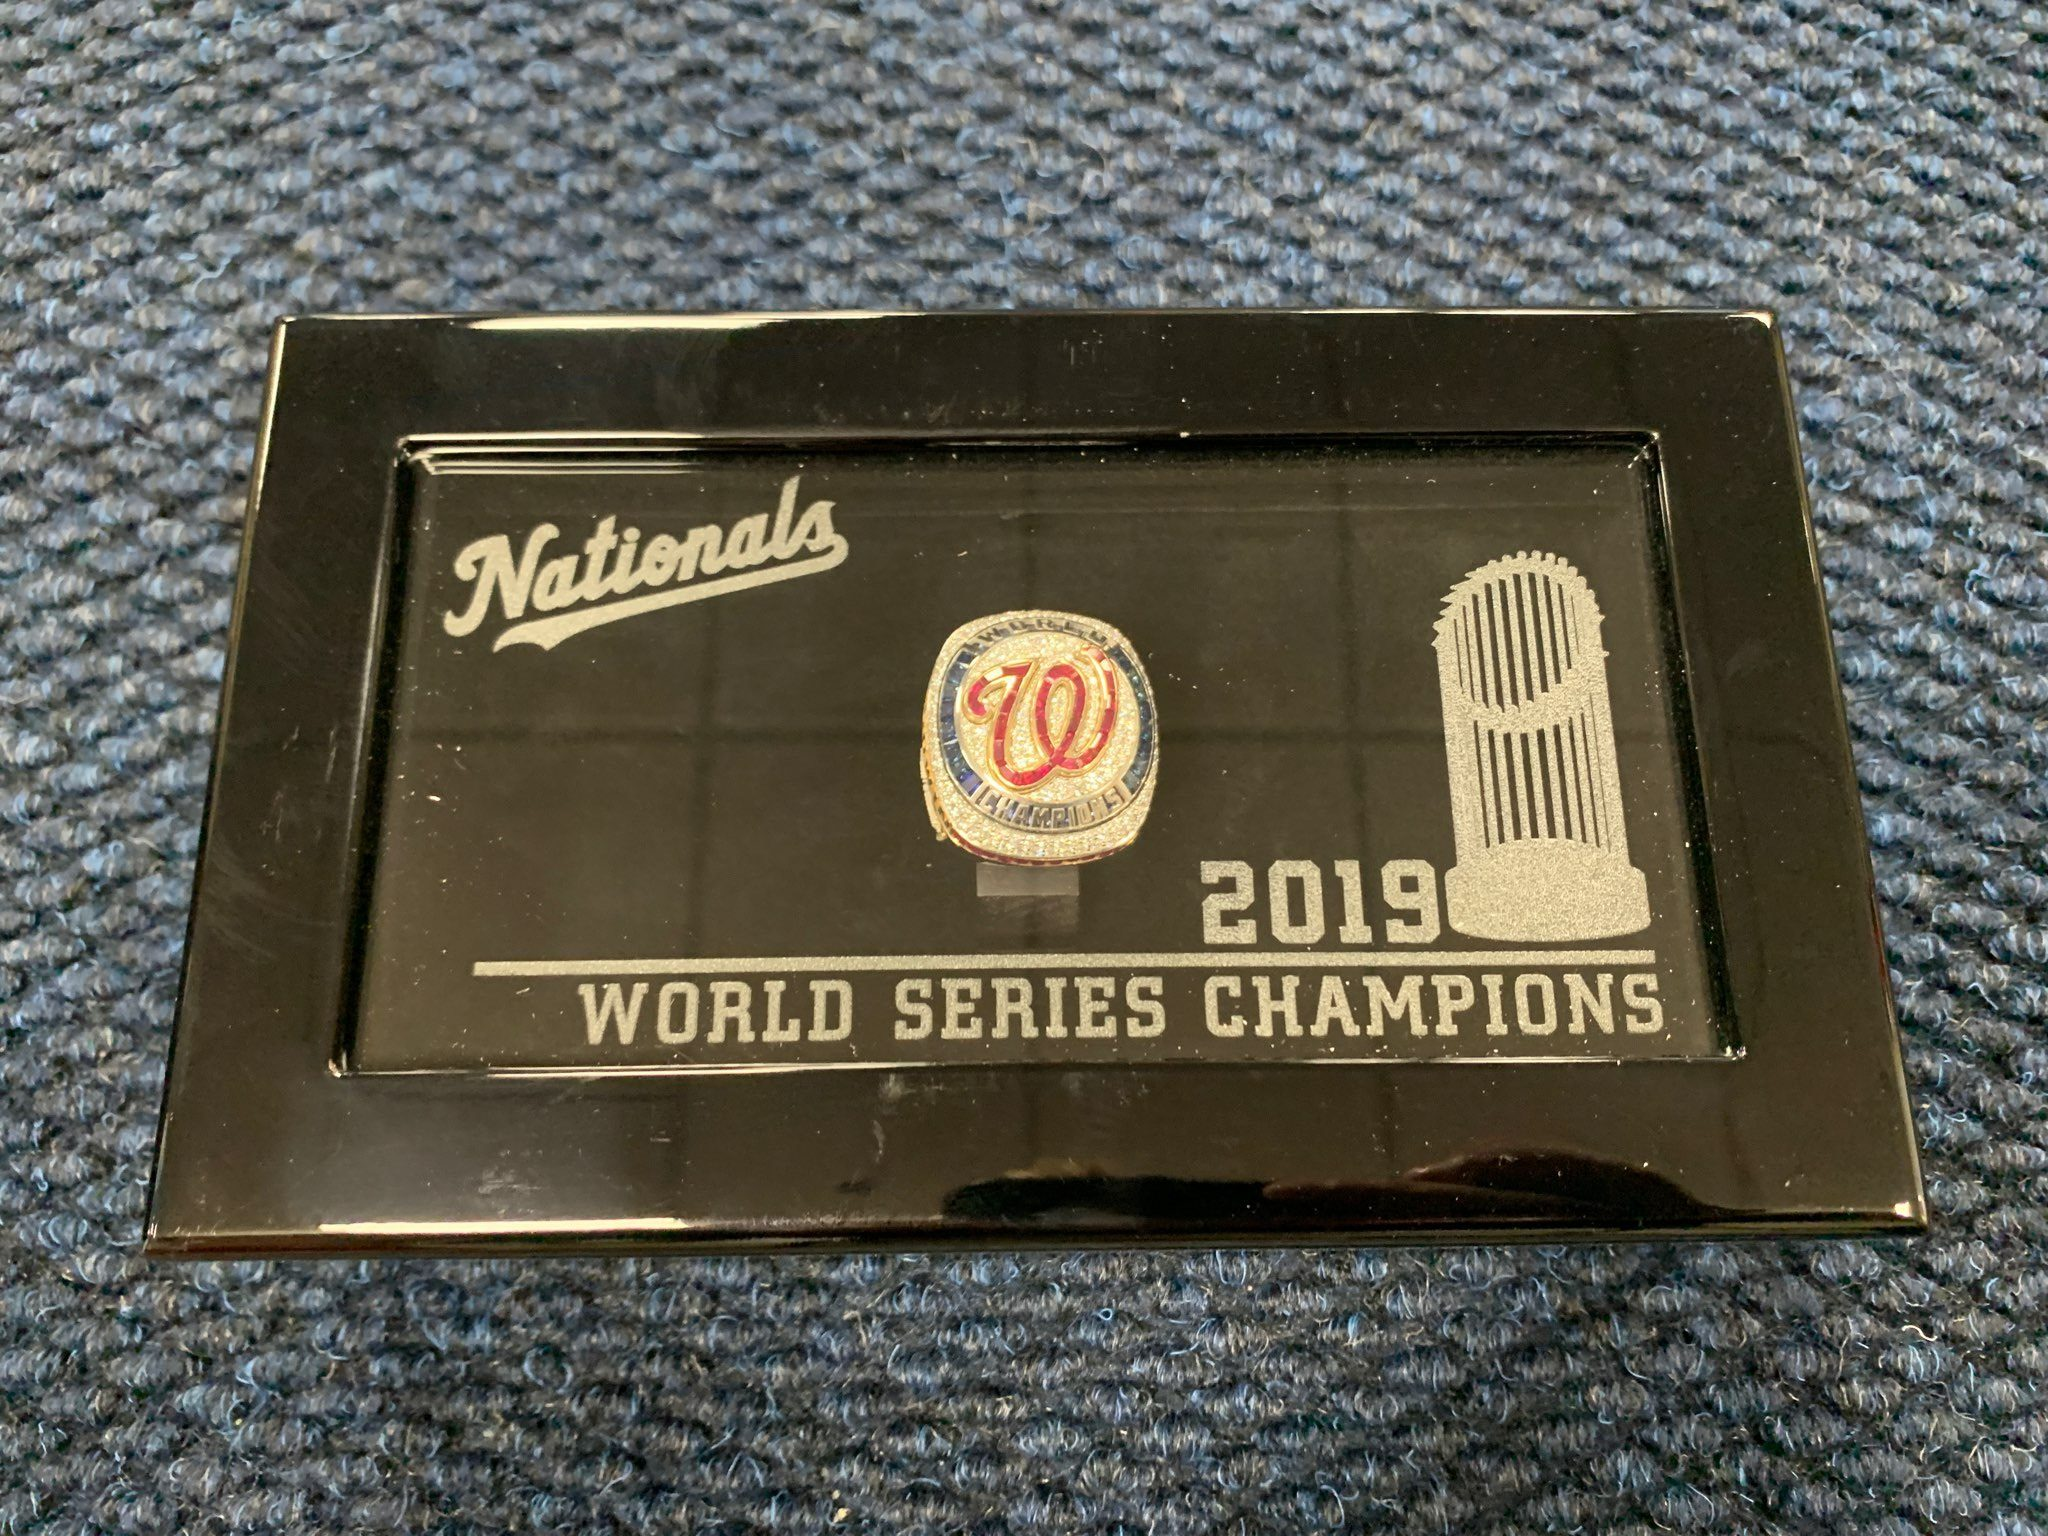 Kyle McGowin's World Series ring in its box.